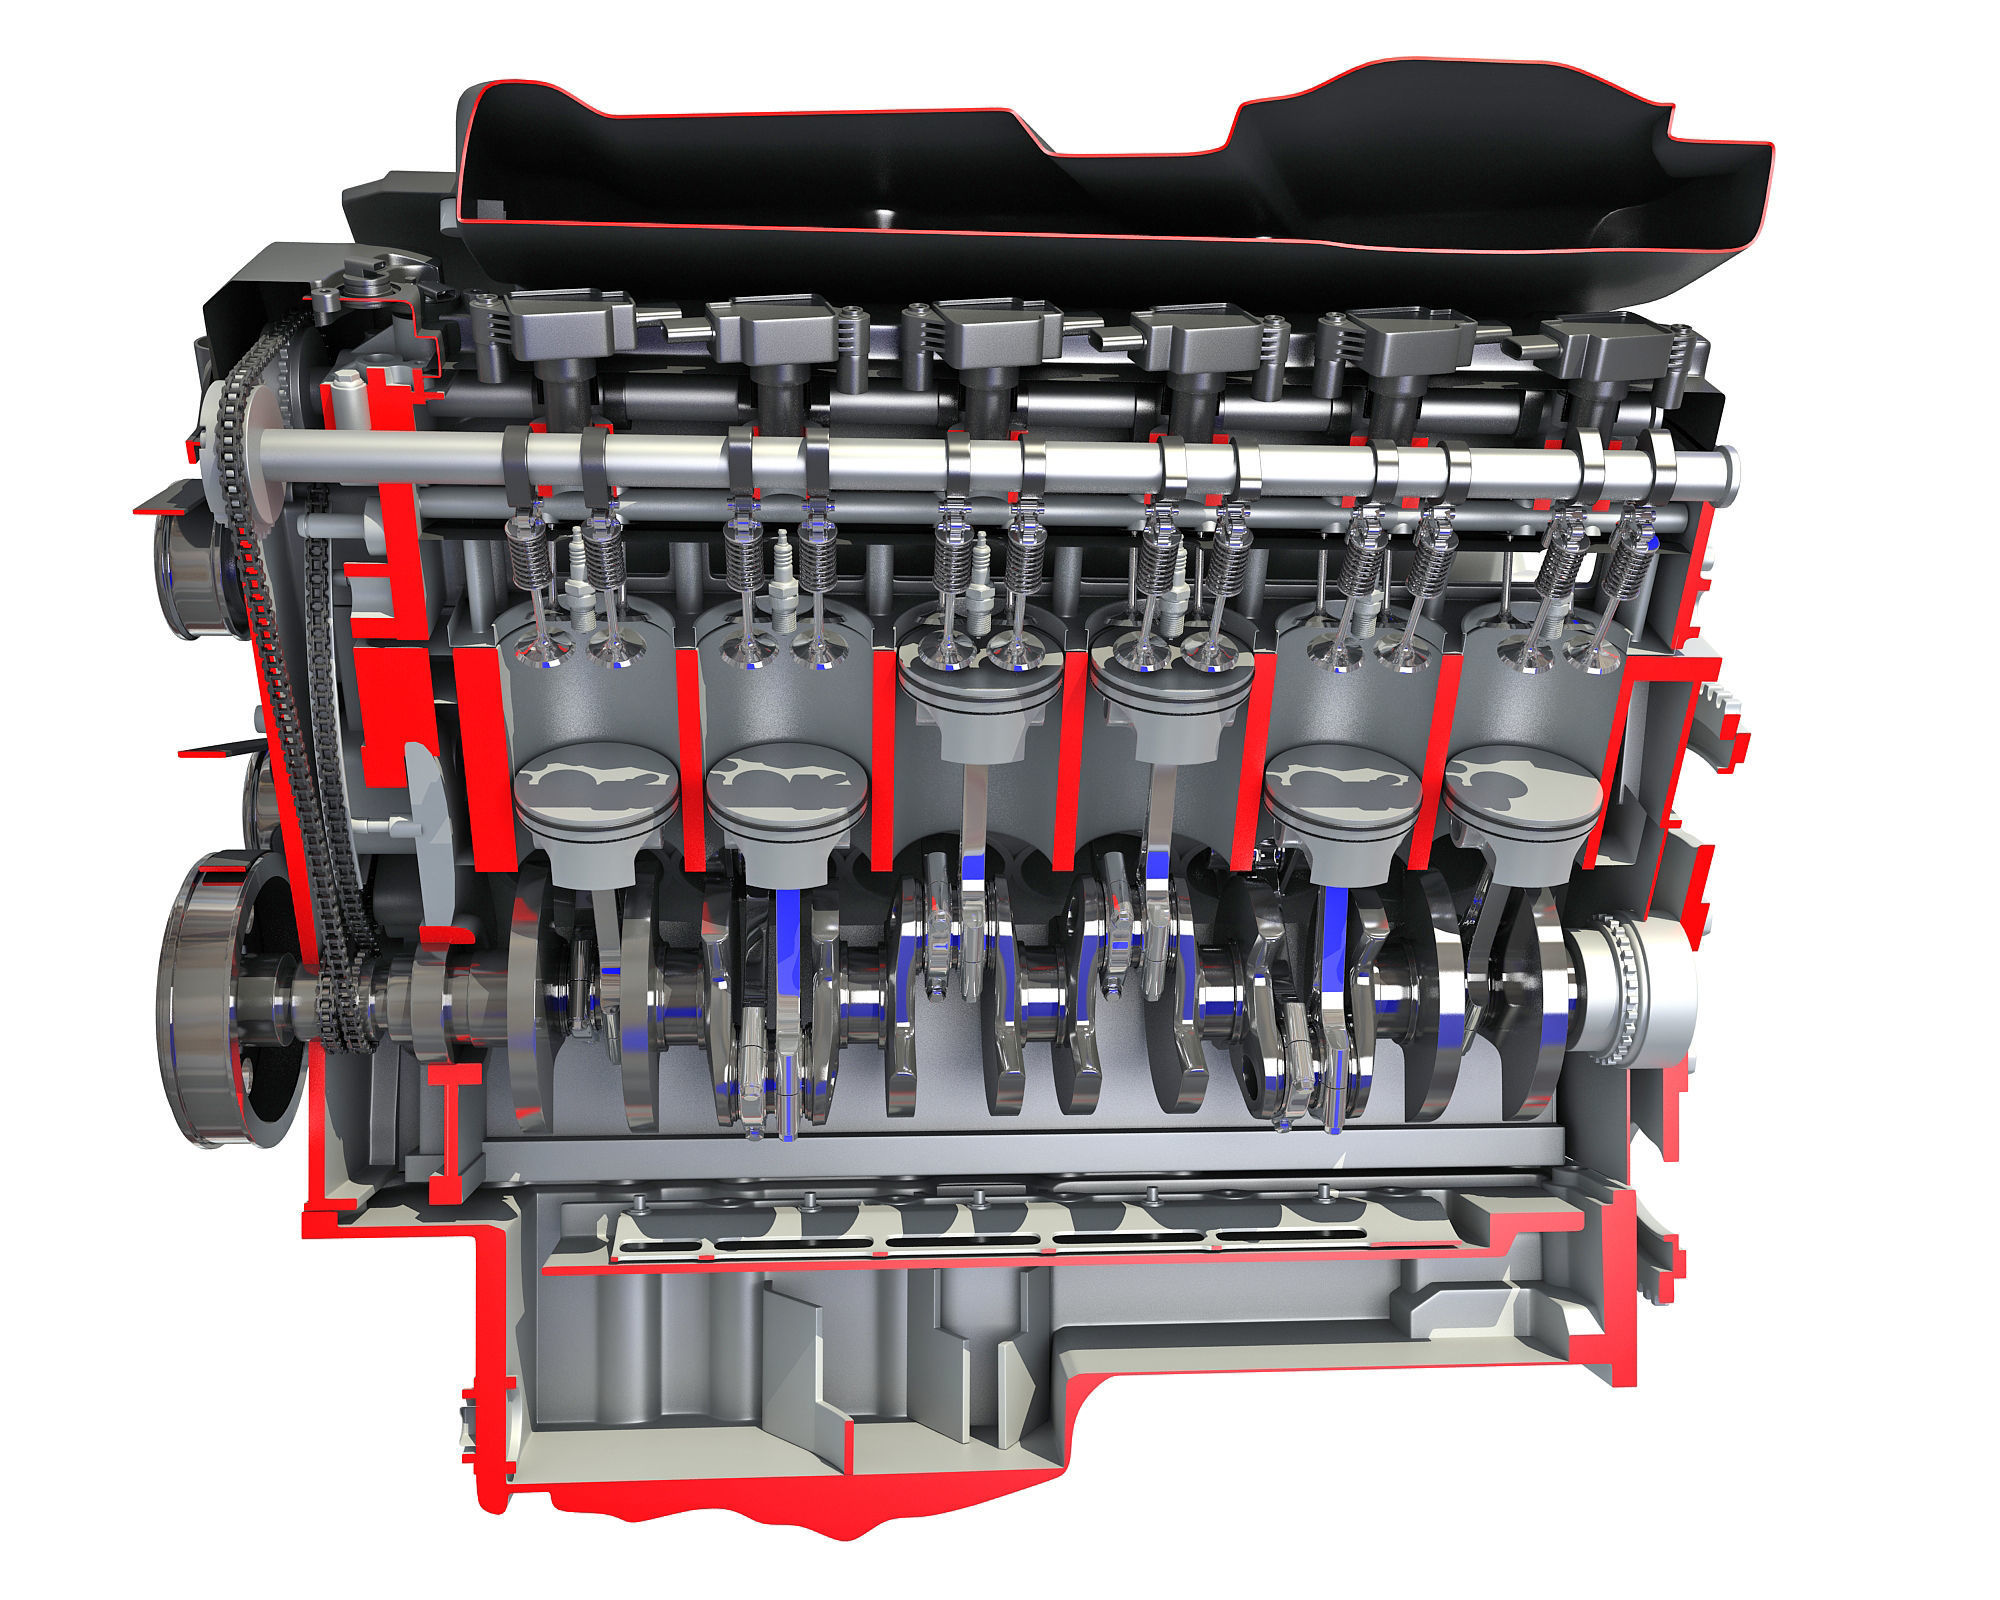 Animated Cutaway V12 Engine